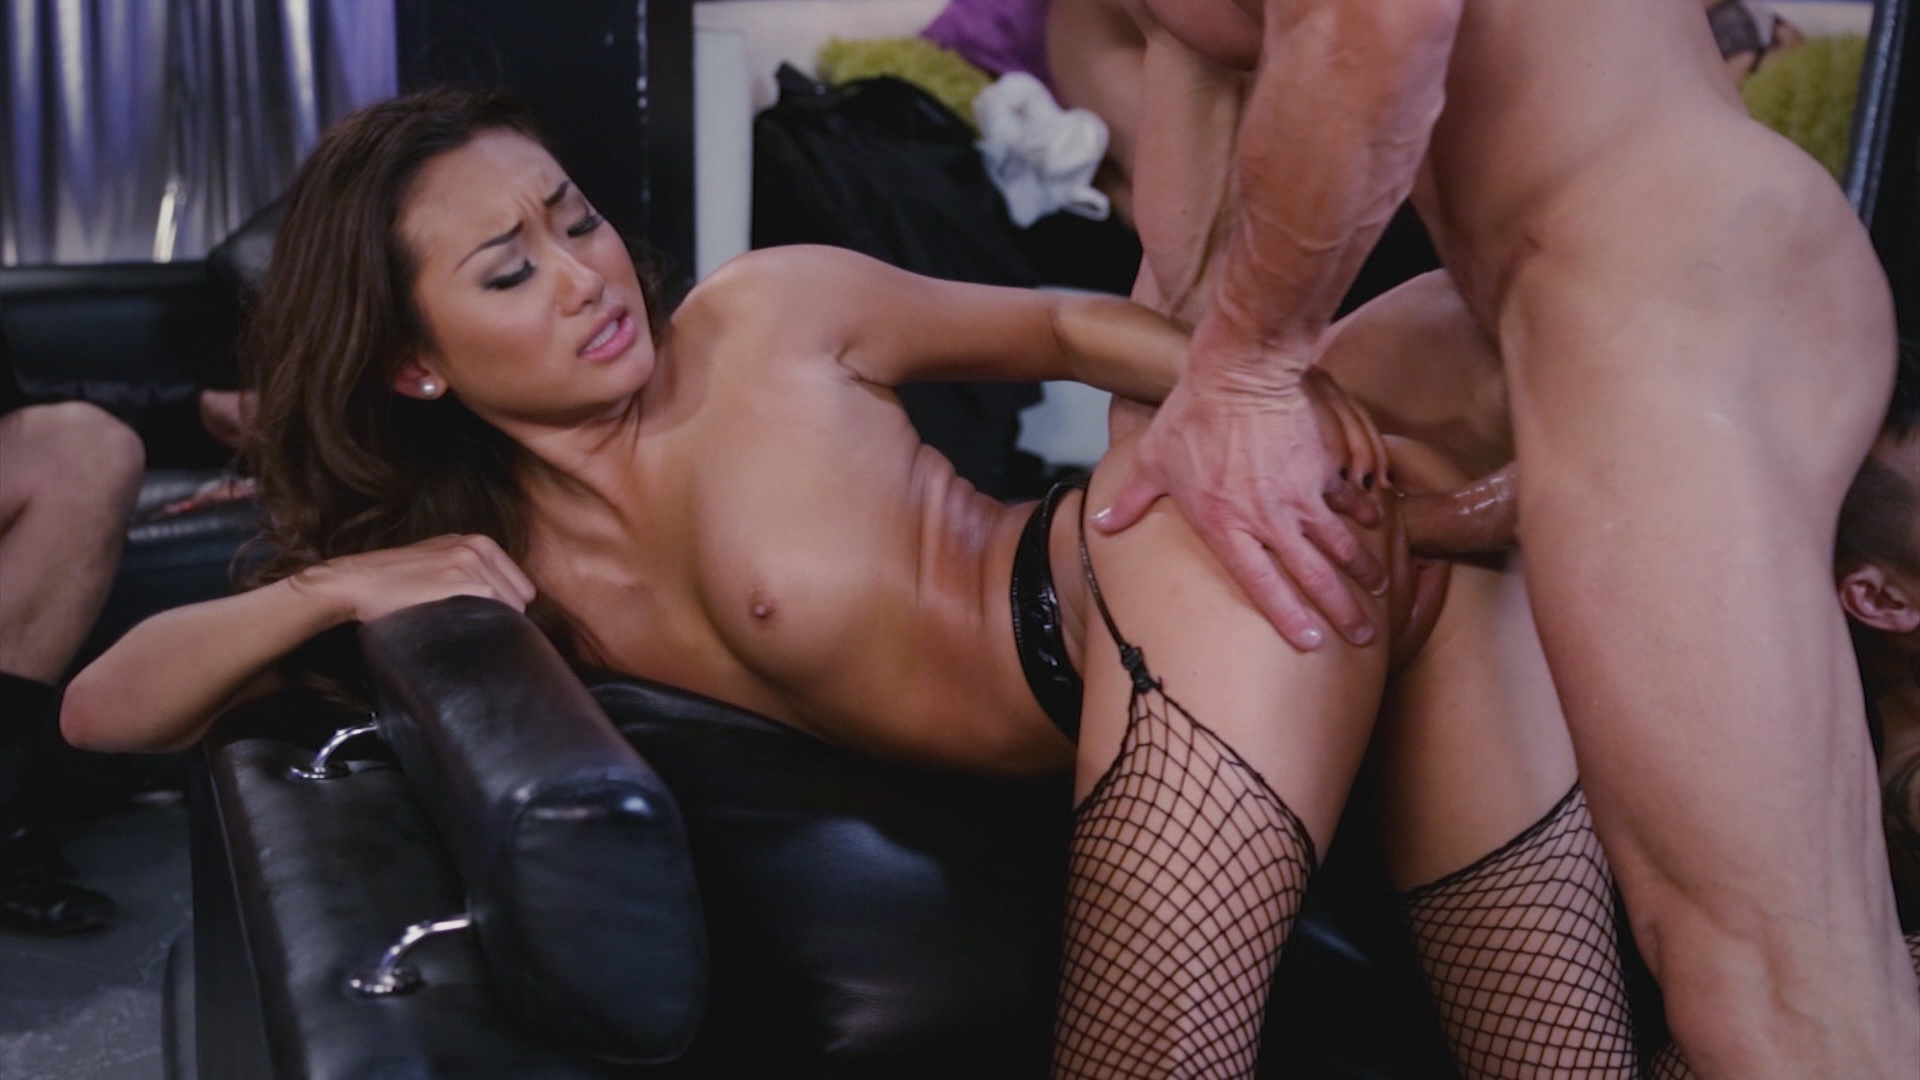 The Orgy Initiation Of Lola xvideos176383